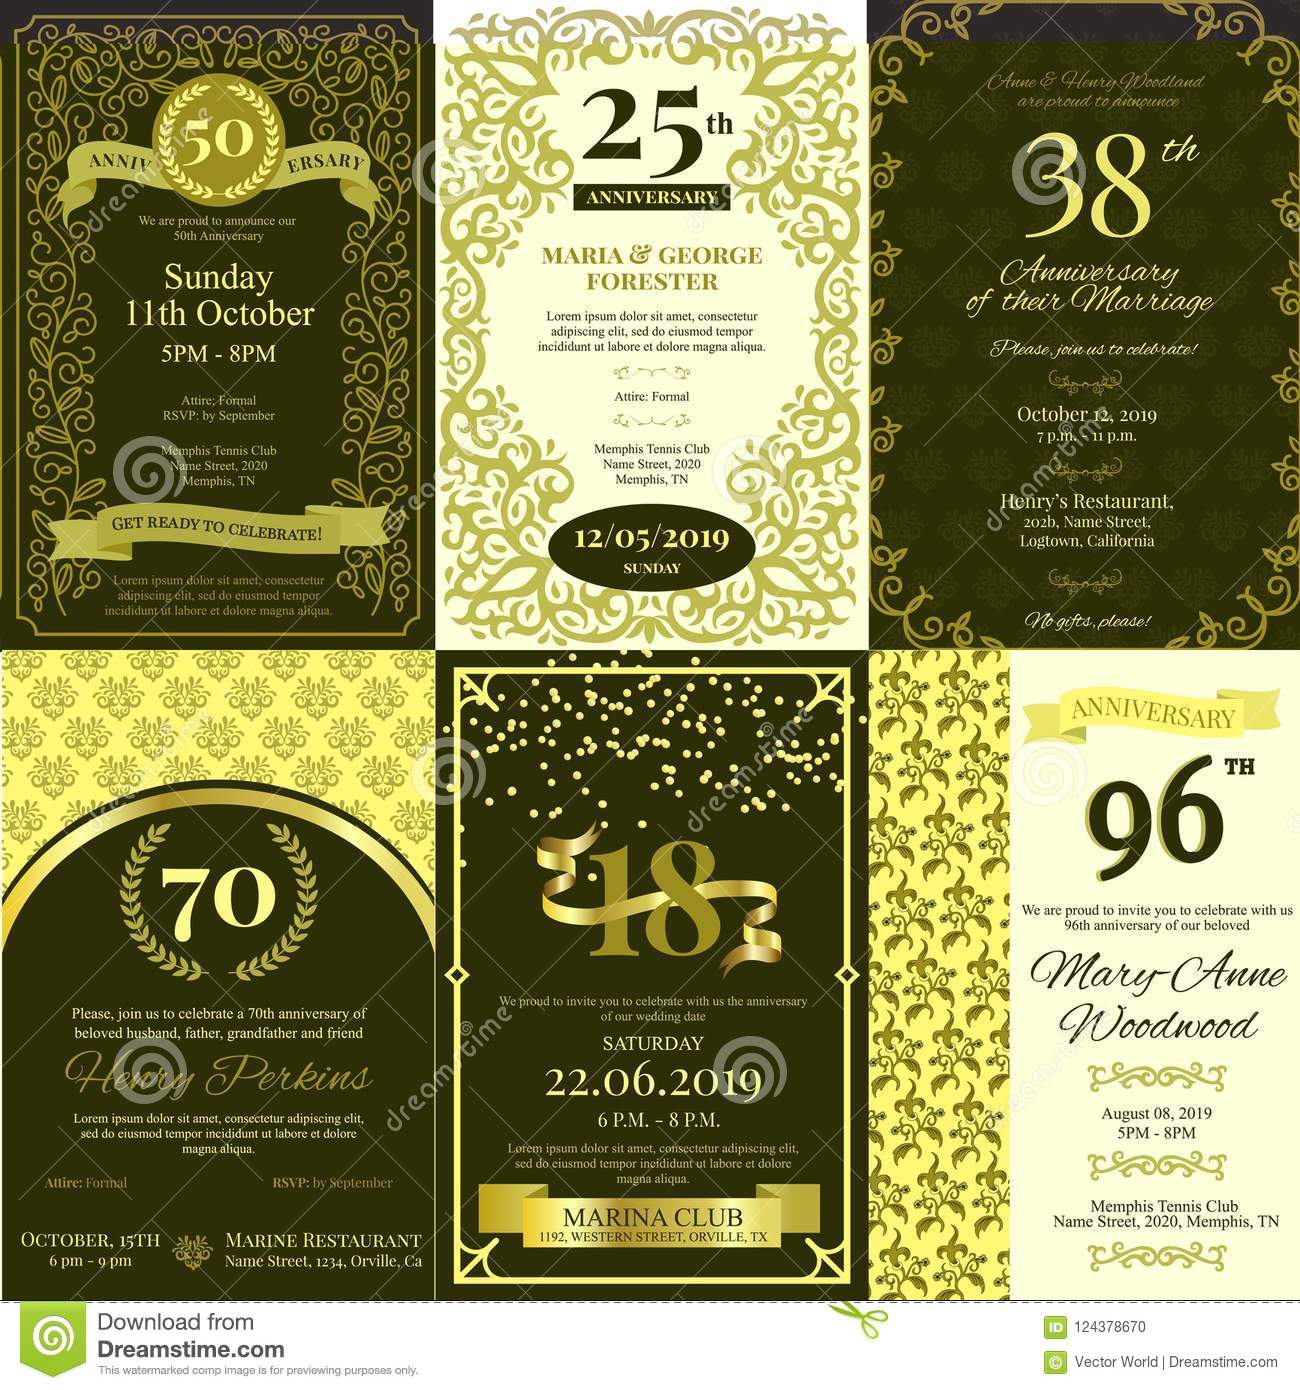 Anniversary invitation vector card inviting to birthday party or download anniversary invitation vector card inviting to birthday party or wedding celebration background golden design template stopboris Images